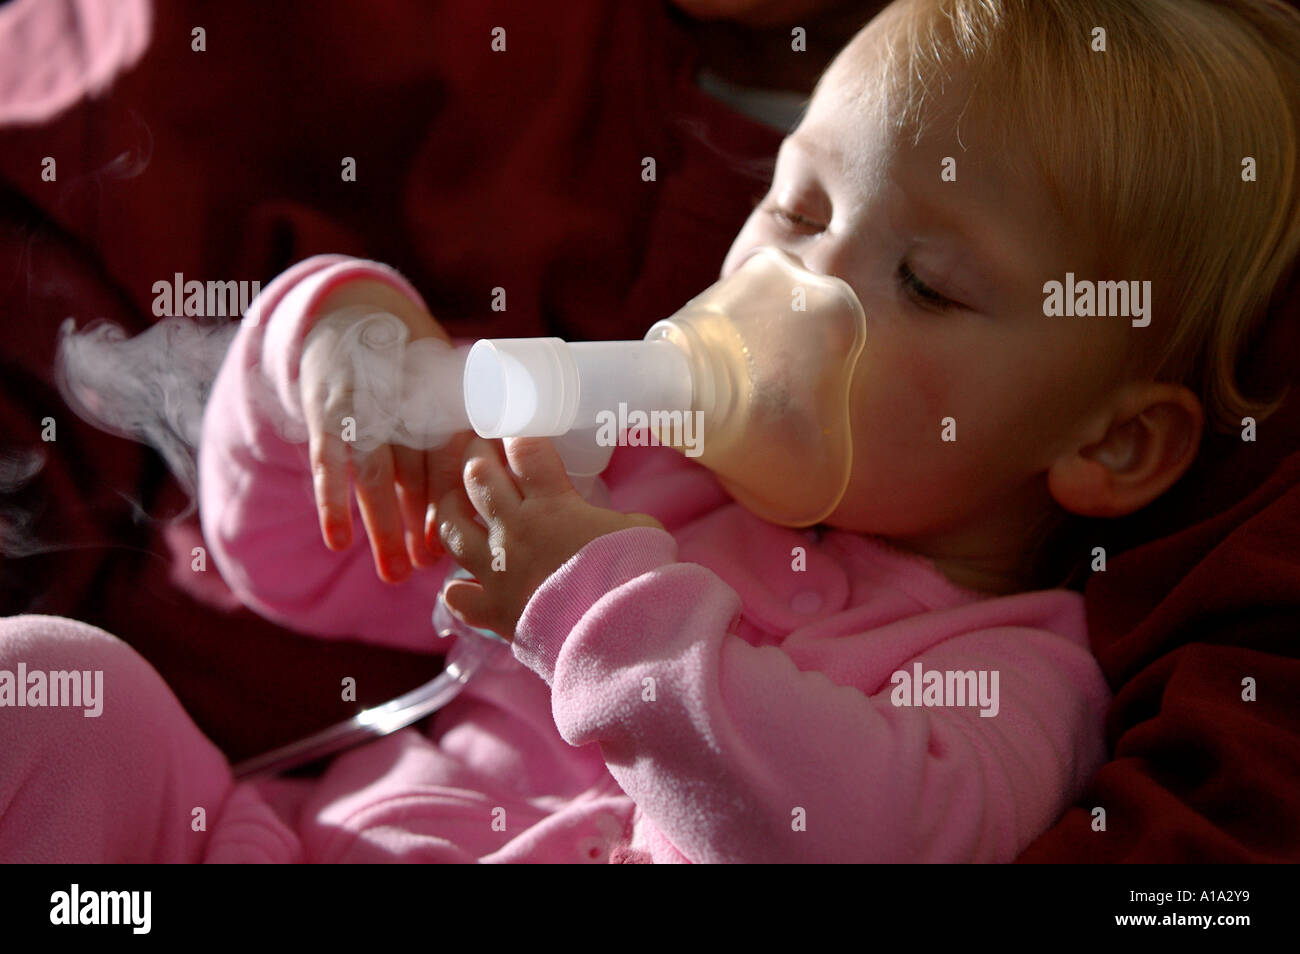 A toddler takes her medicine through a nebulizer as part of treatment for asthma. - Stock Image